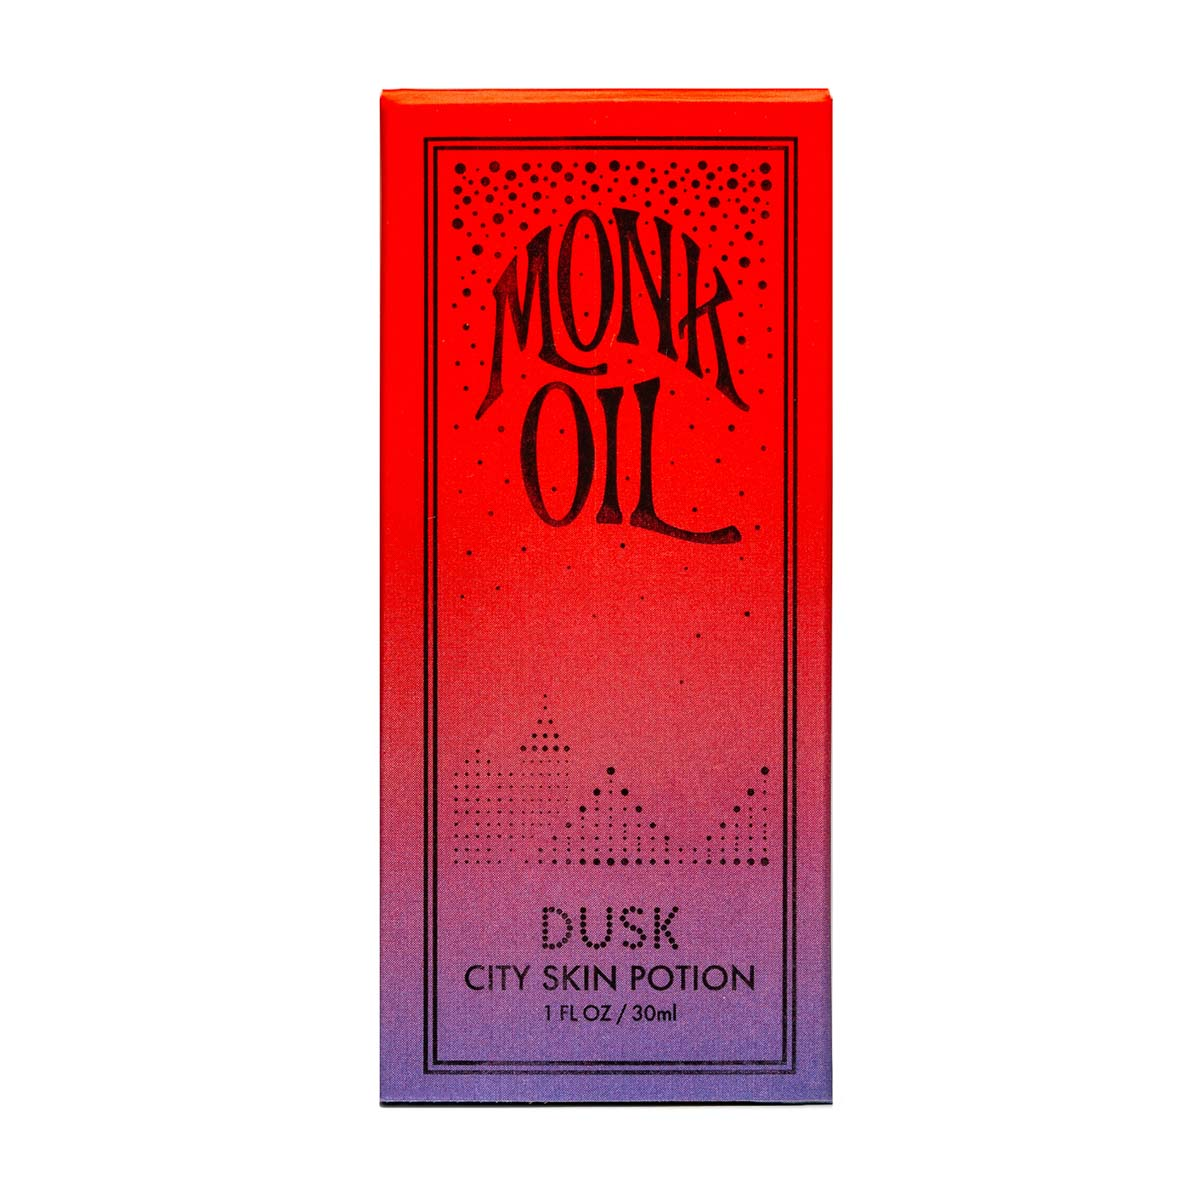 Monk Oil  - City Skin Potion - Dusk (30ml)